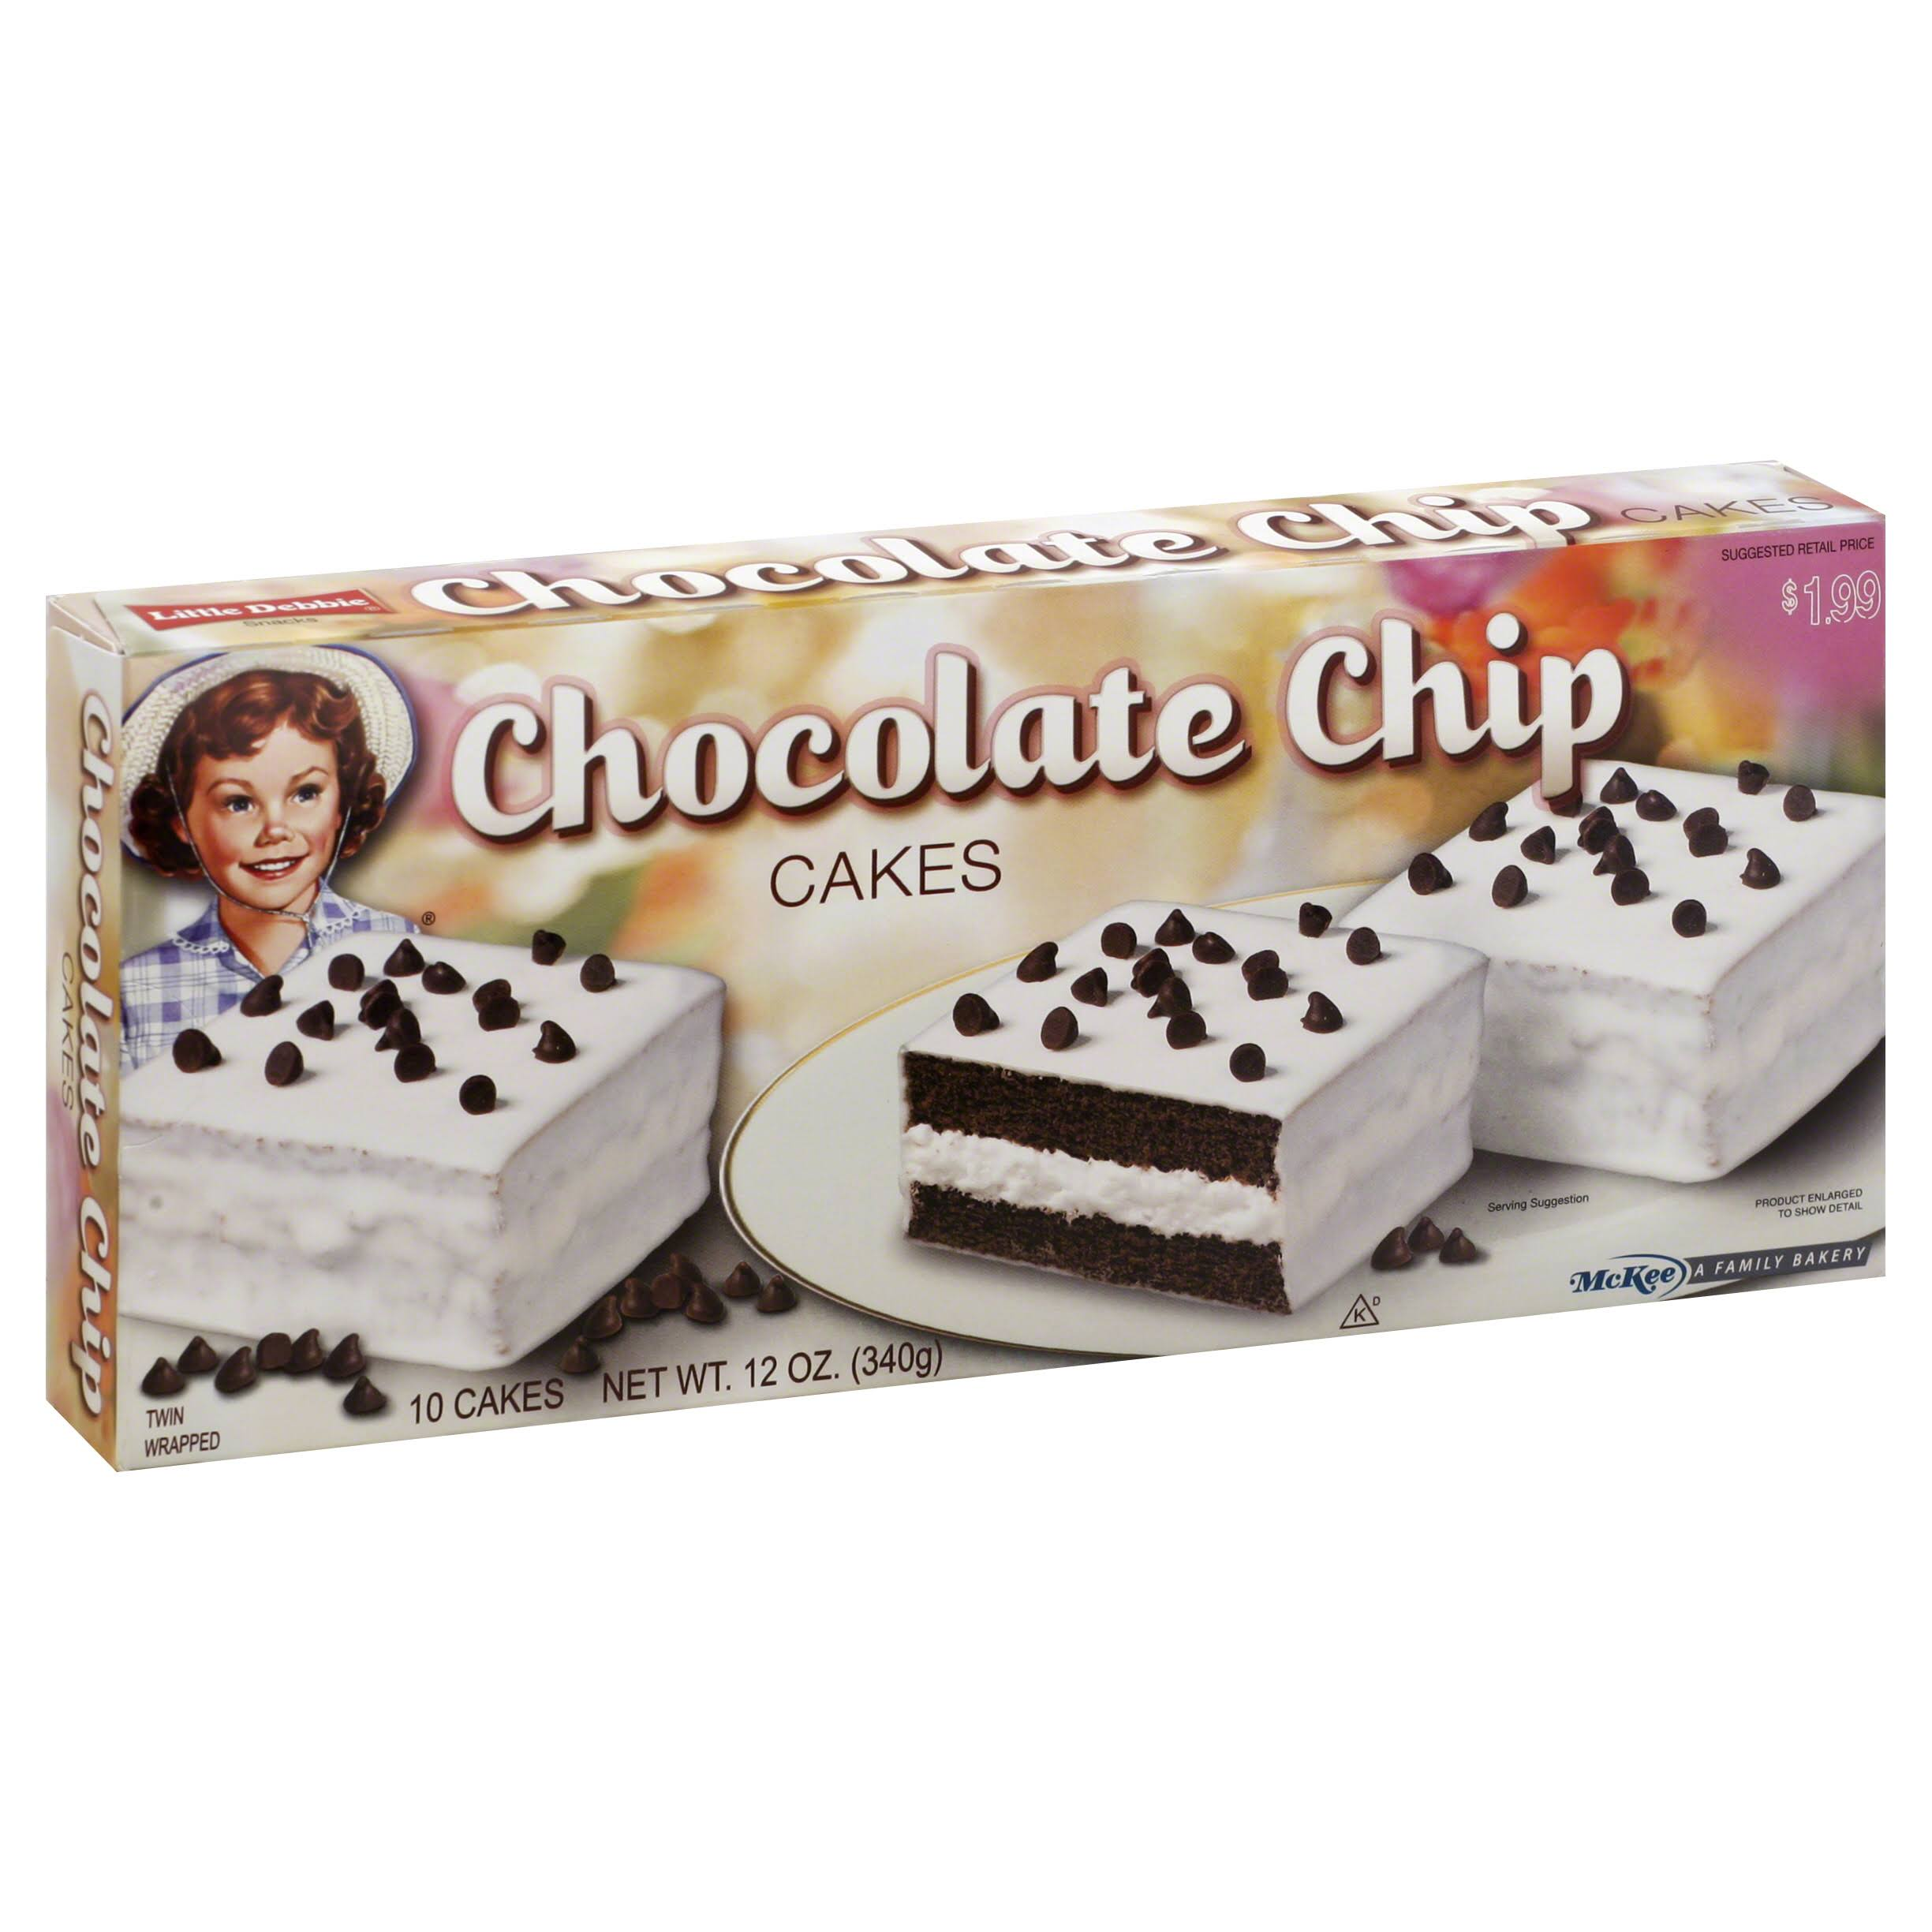 Little Debbie Cakes, Chocolate Chip - 10 cakes, 12 oz